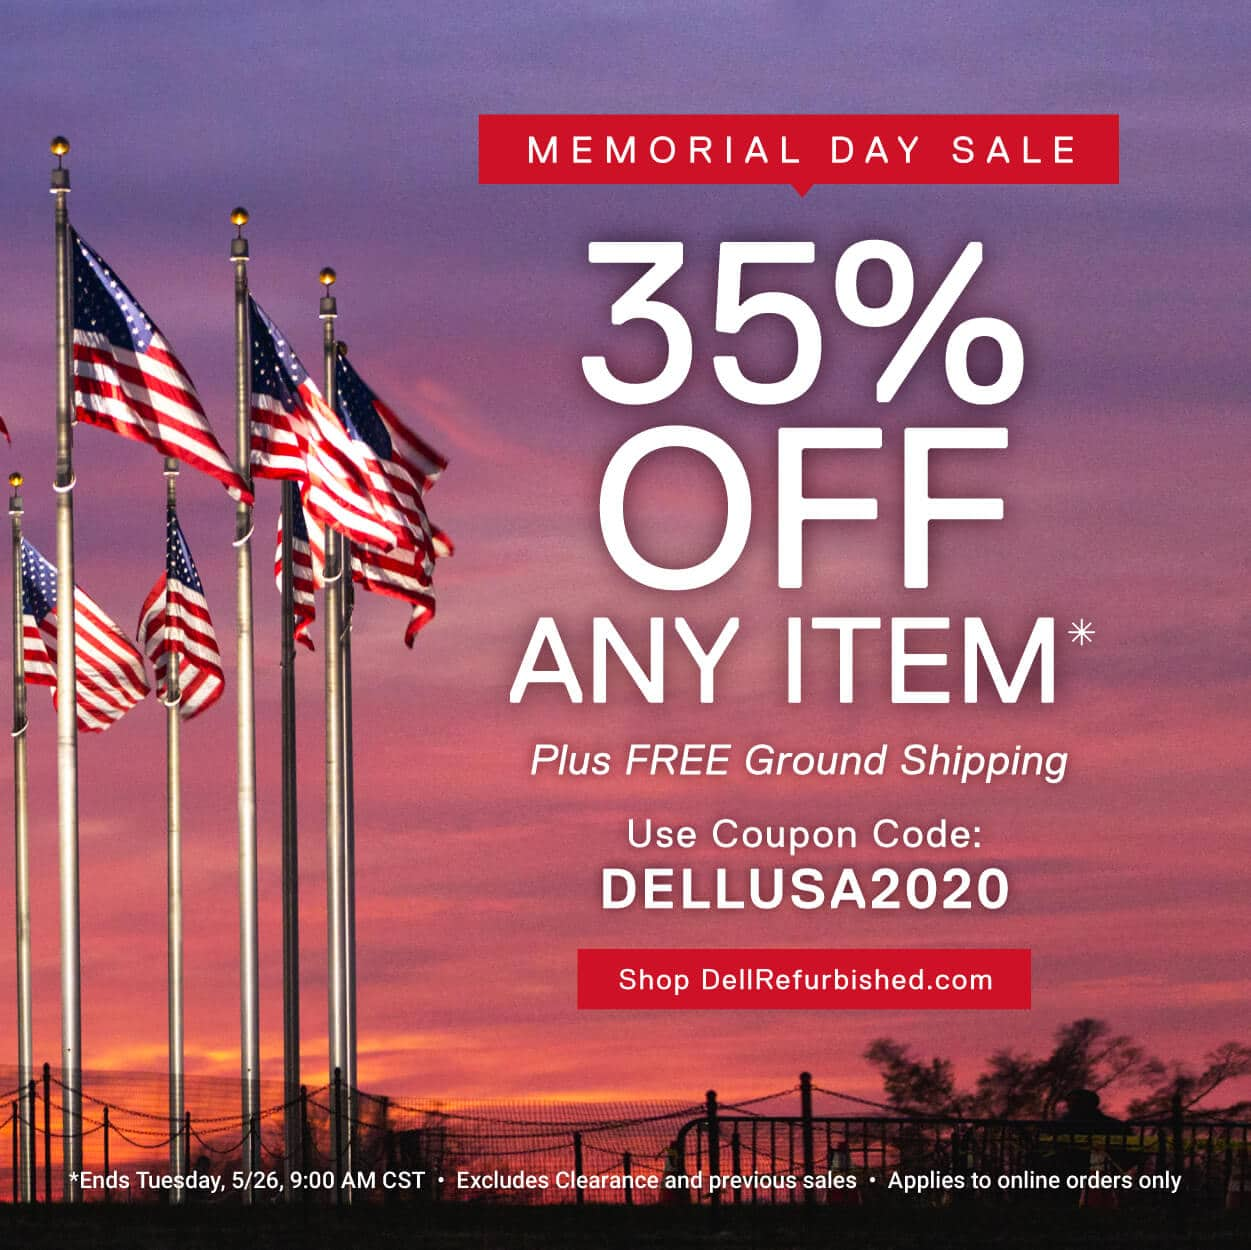 Dell Refurbished Memorial Day Sale: 35% off any item in stock, plus free ground shipping.